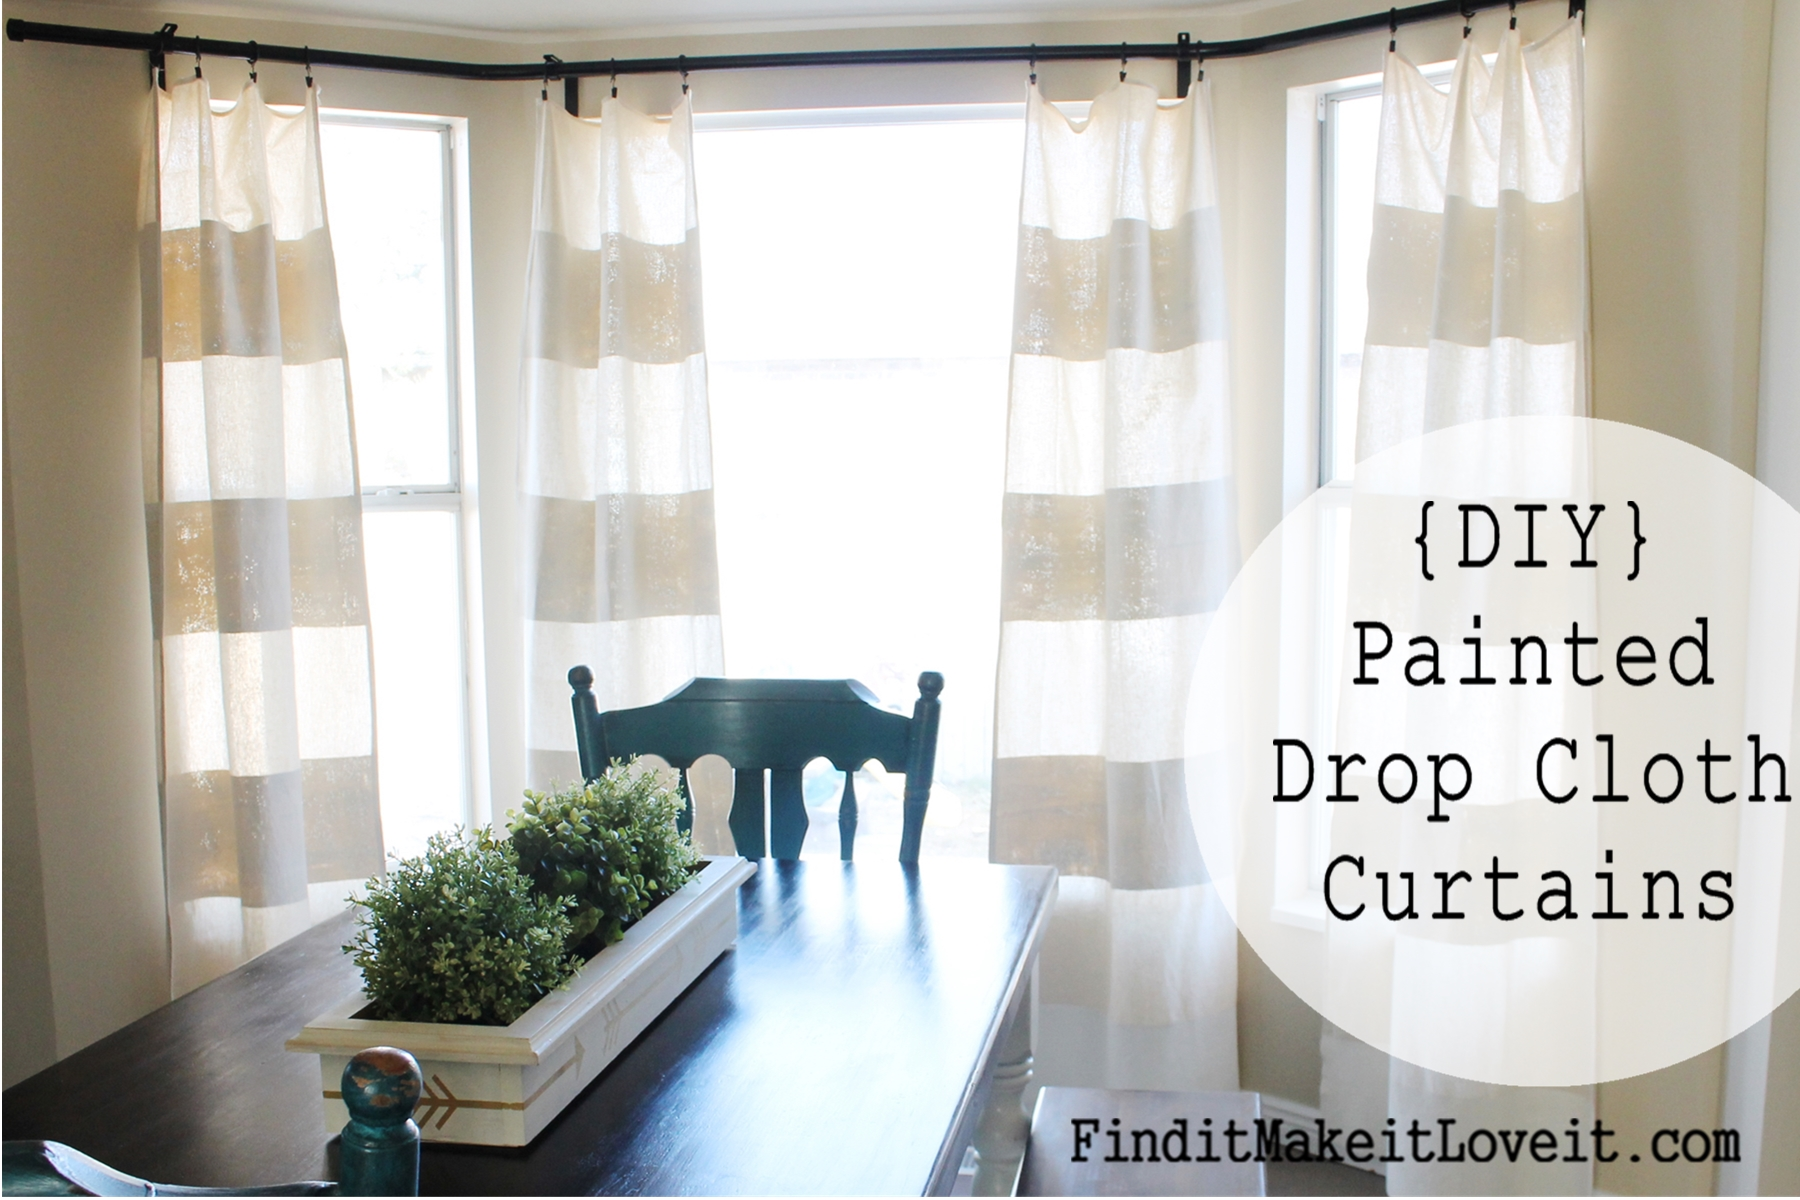 Diy Painted Drop Cloth Curtains Find It Make It Love It